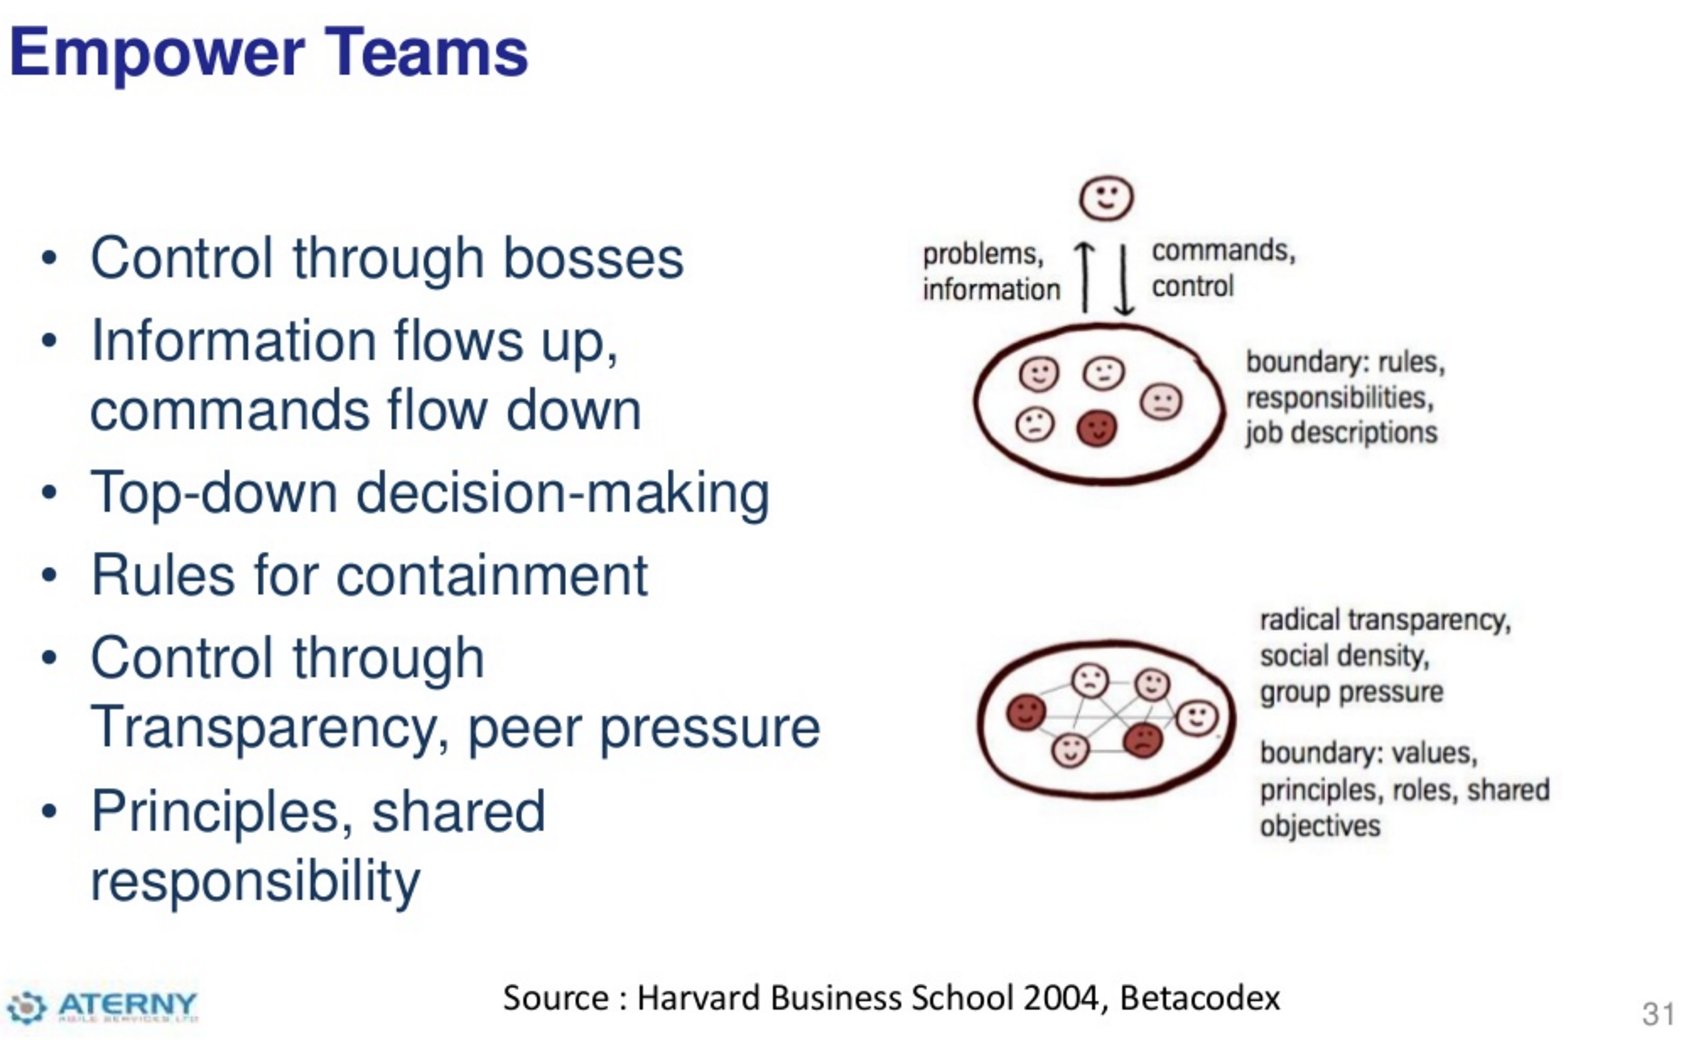 diagram showing the difference between top-down and team-based approaches to work